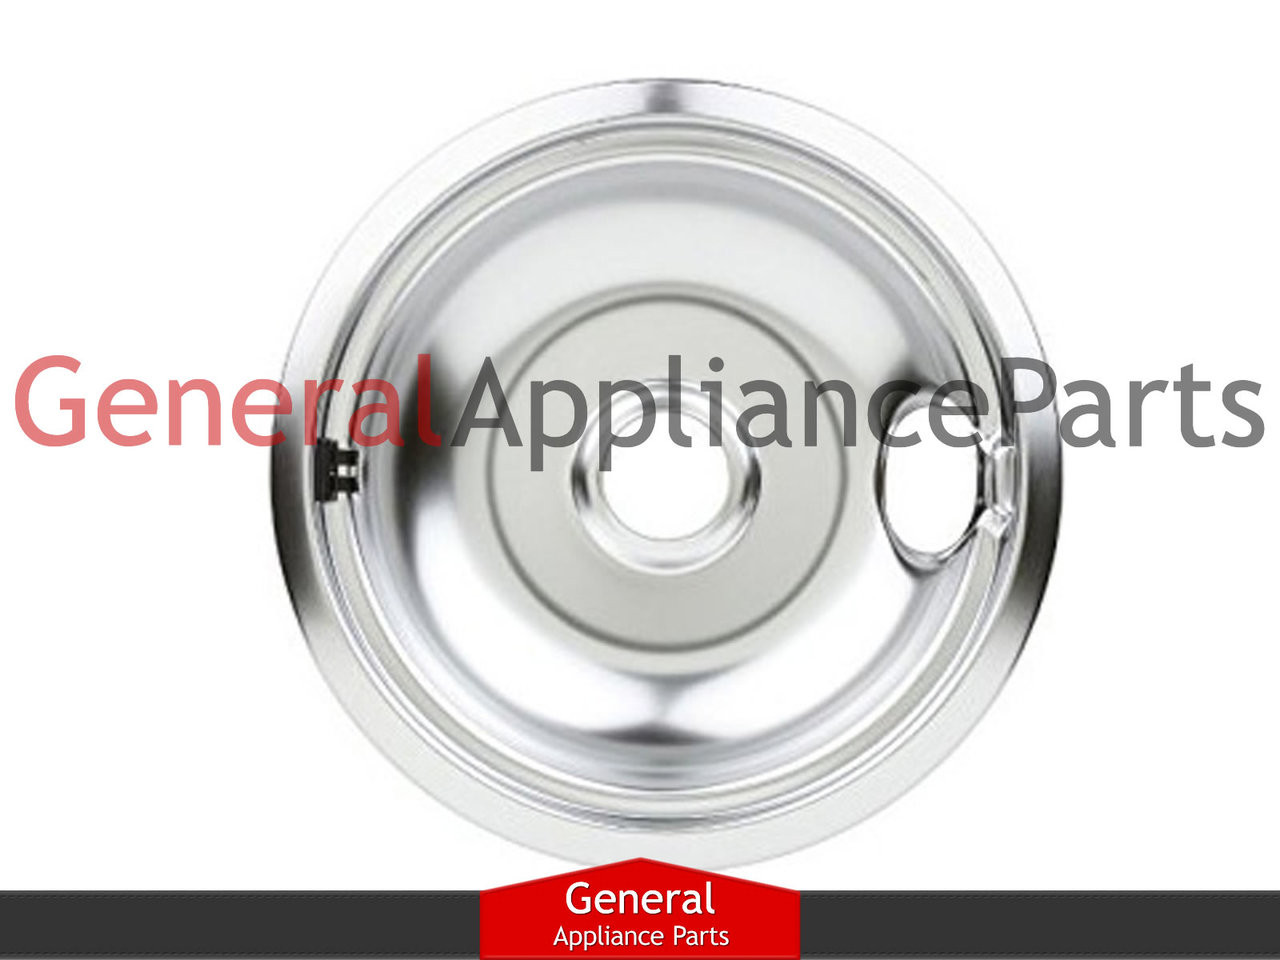 "4 Pack White Westinghouse Stove 8/"" Burner Chrome Drip Pan 5303935054"